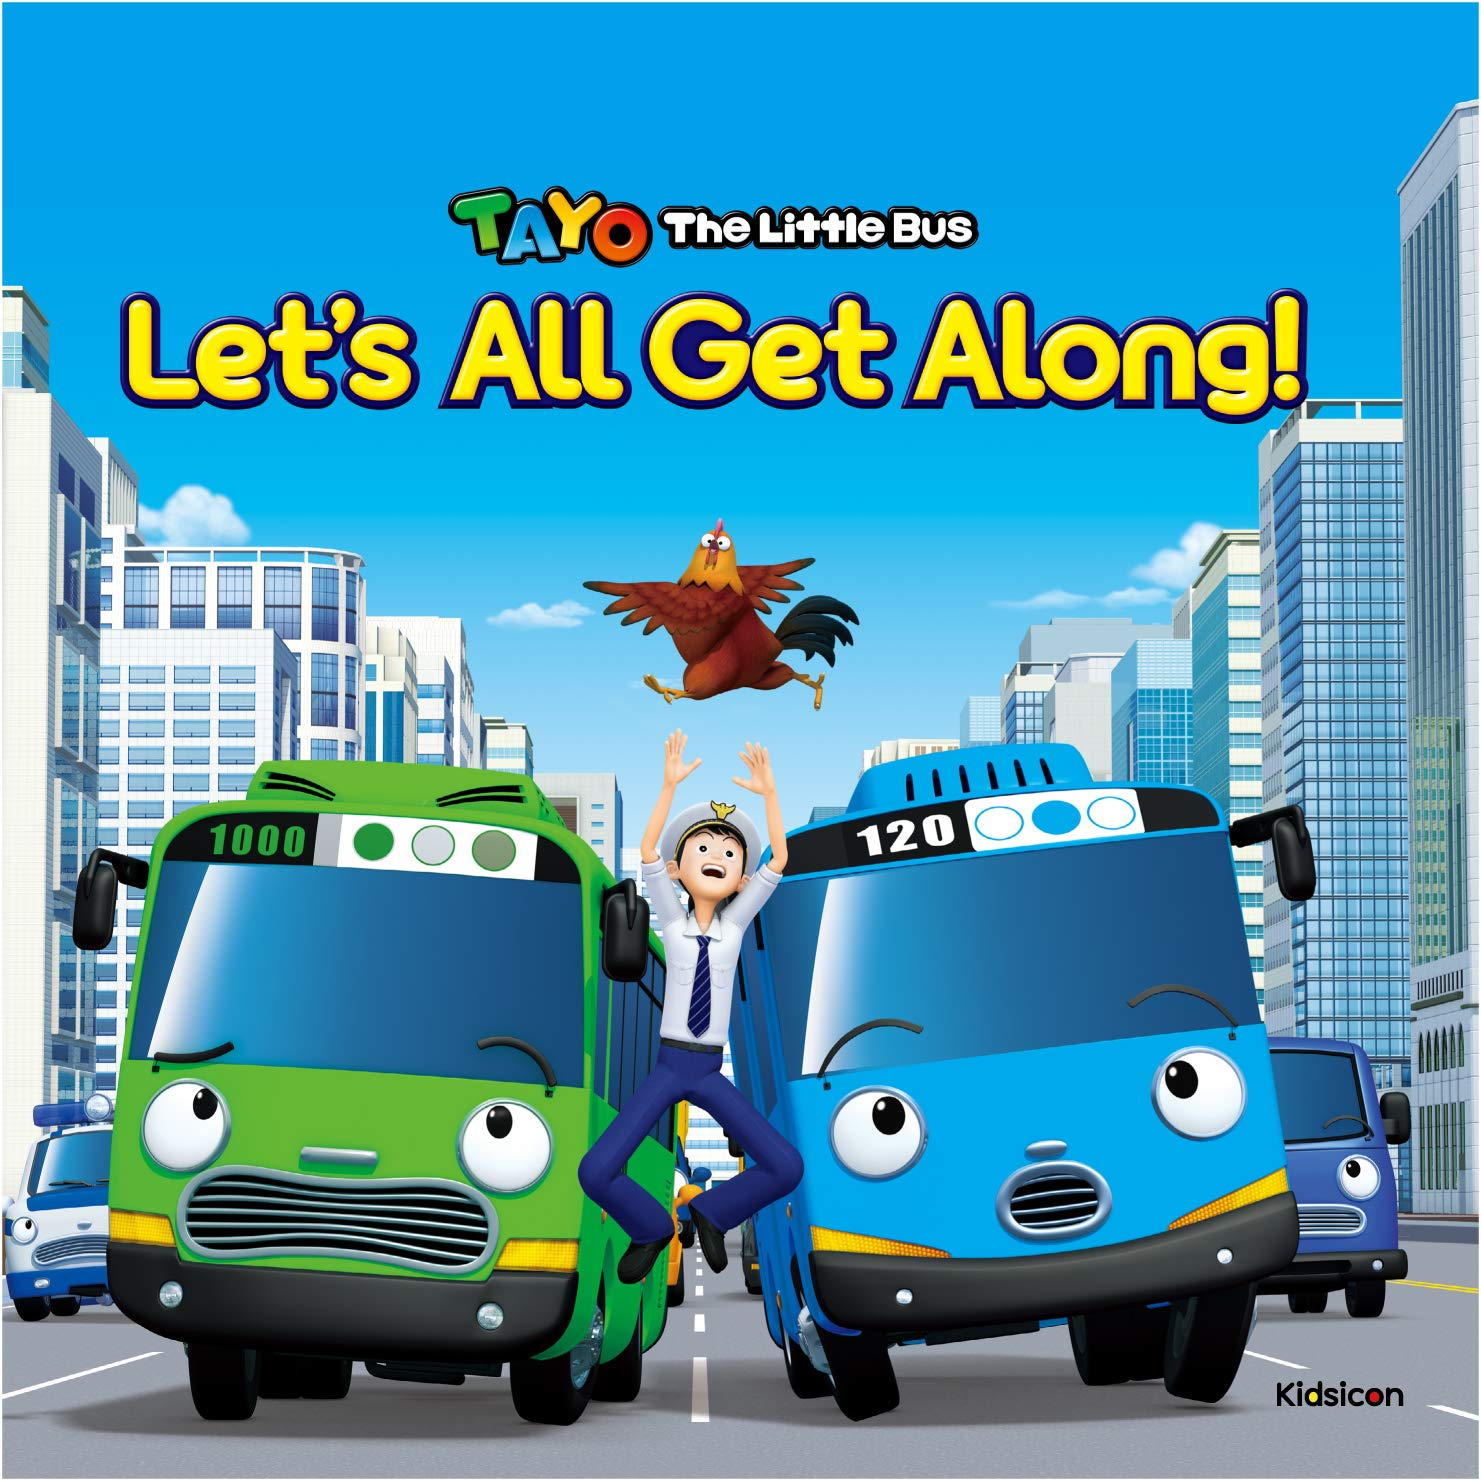 Tayo the Little Bus: Let's All Get Along by Kidsicon